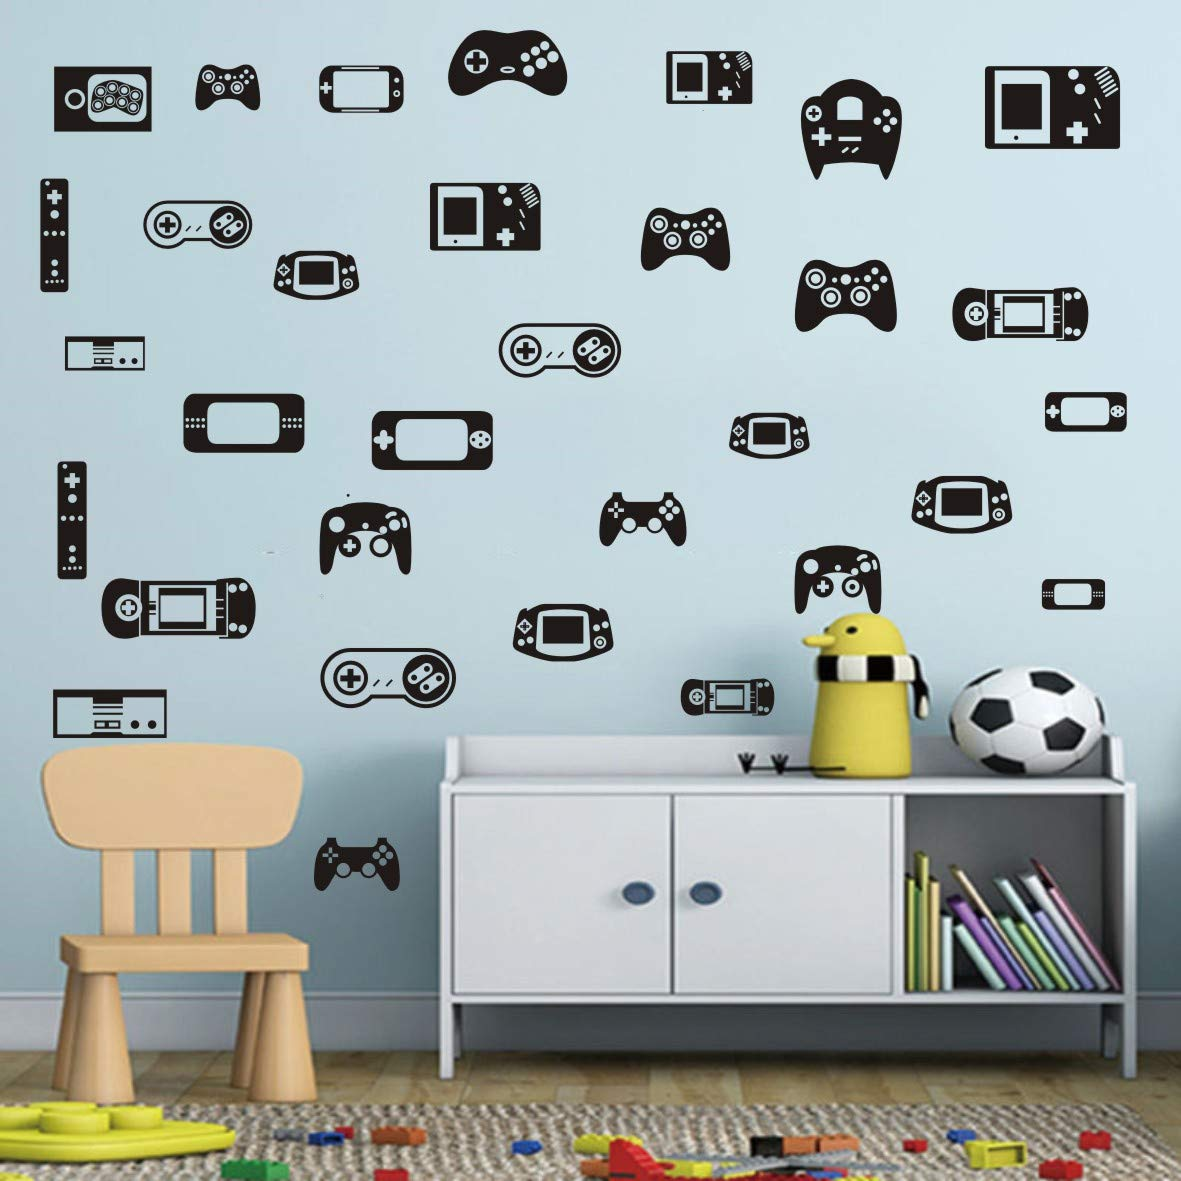 Children Room Art Games Wall Sticker 50pcs/Set Gamepad Game Console Vinyl Decor Stickers for Boys Bedroom Gaming Wall Decal Bedroom Removablr Murals AM108 (Black)